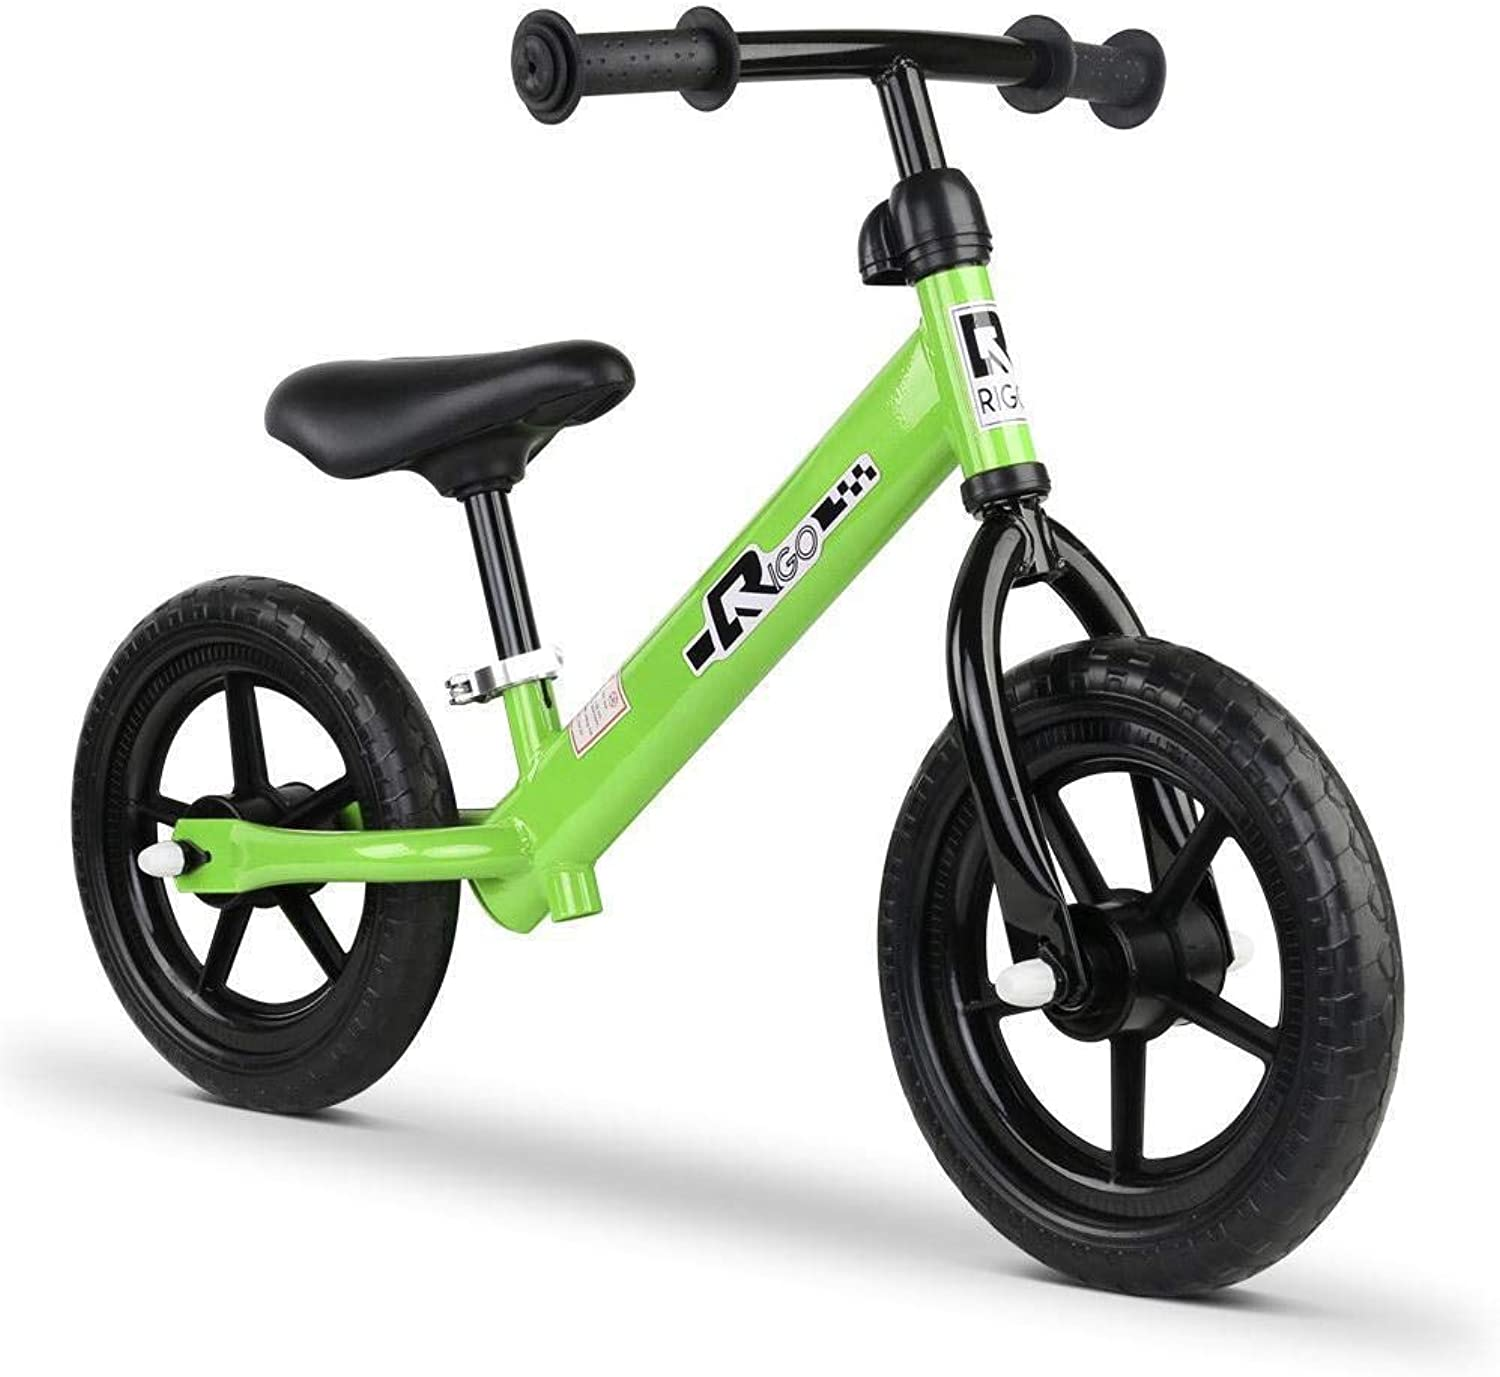 Rigo 12 Inch Kids Balance Bike  Green